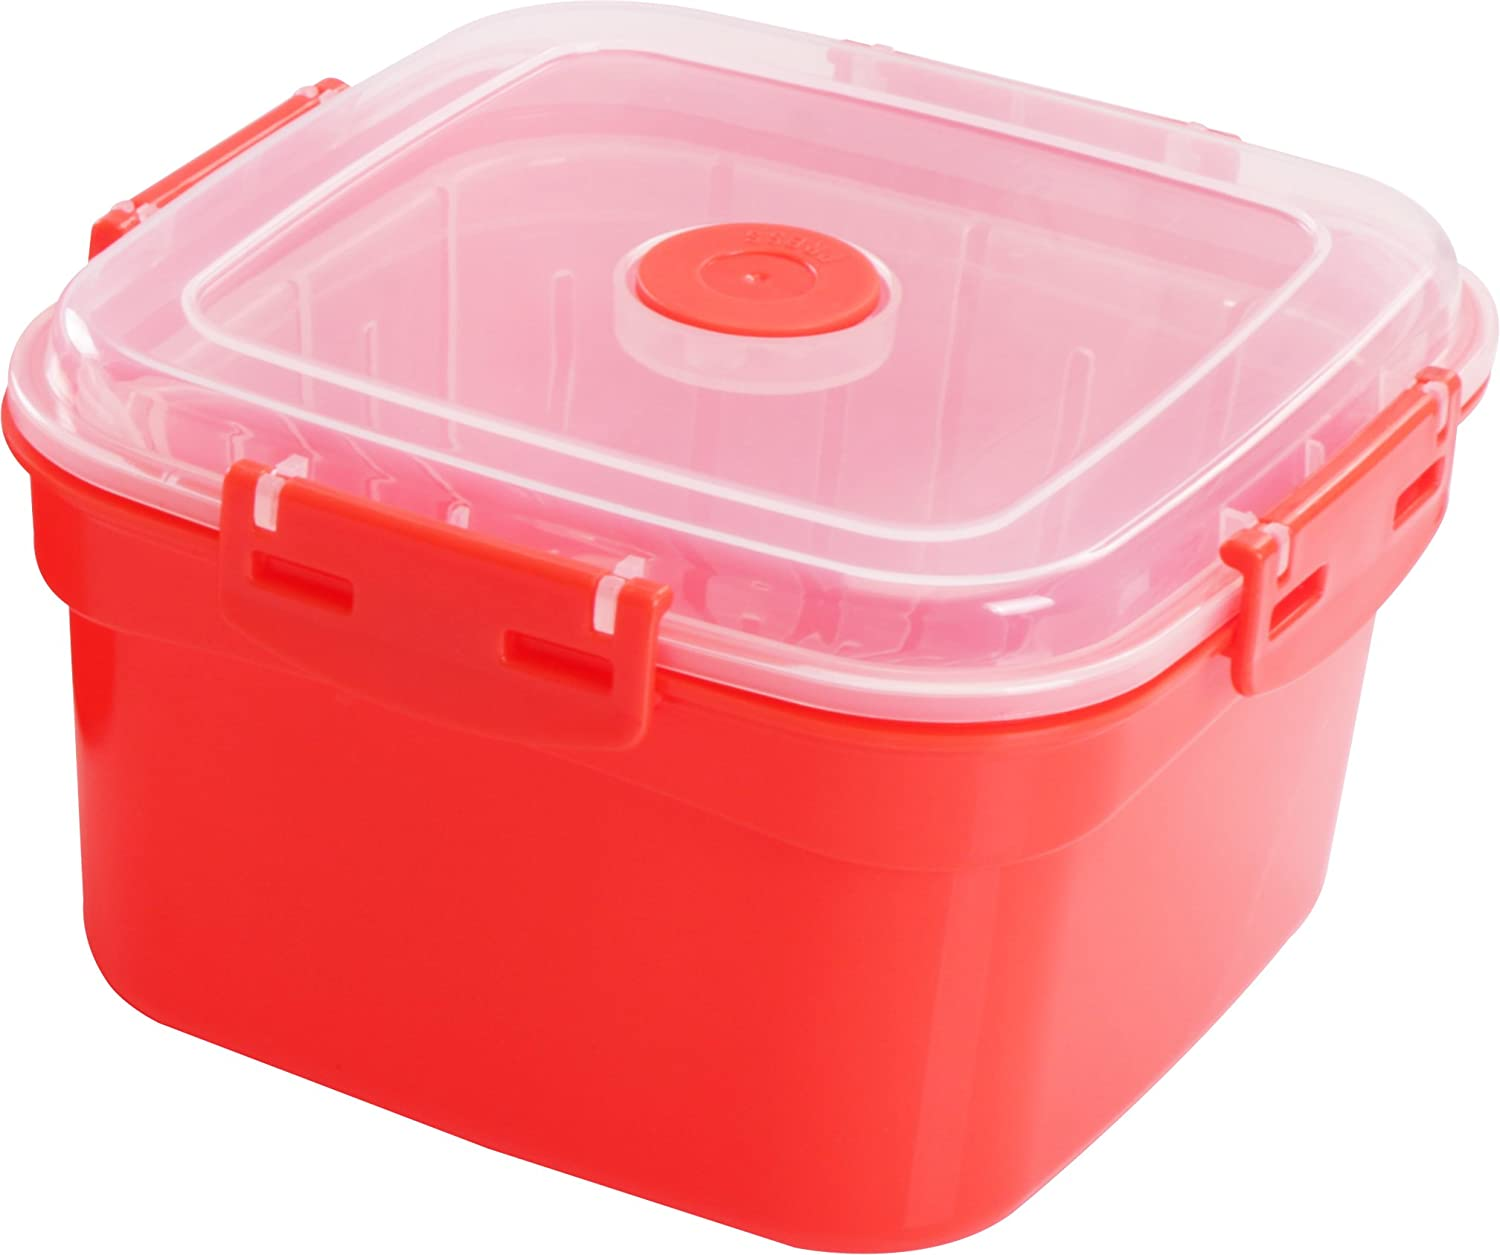 Utopia Kitchen Microwave Steamer and Storage Container (2.11 Quarts) - Dishwasher and Freezer Safe - BPA-Free PP Material UK0229